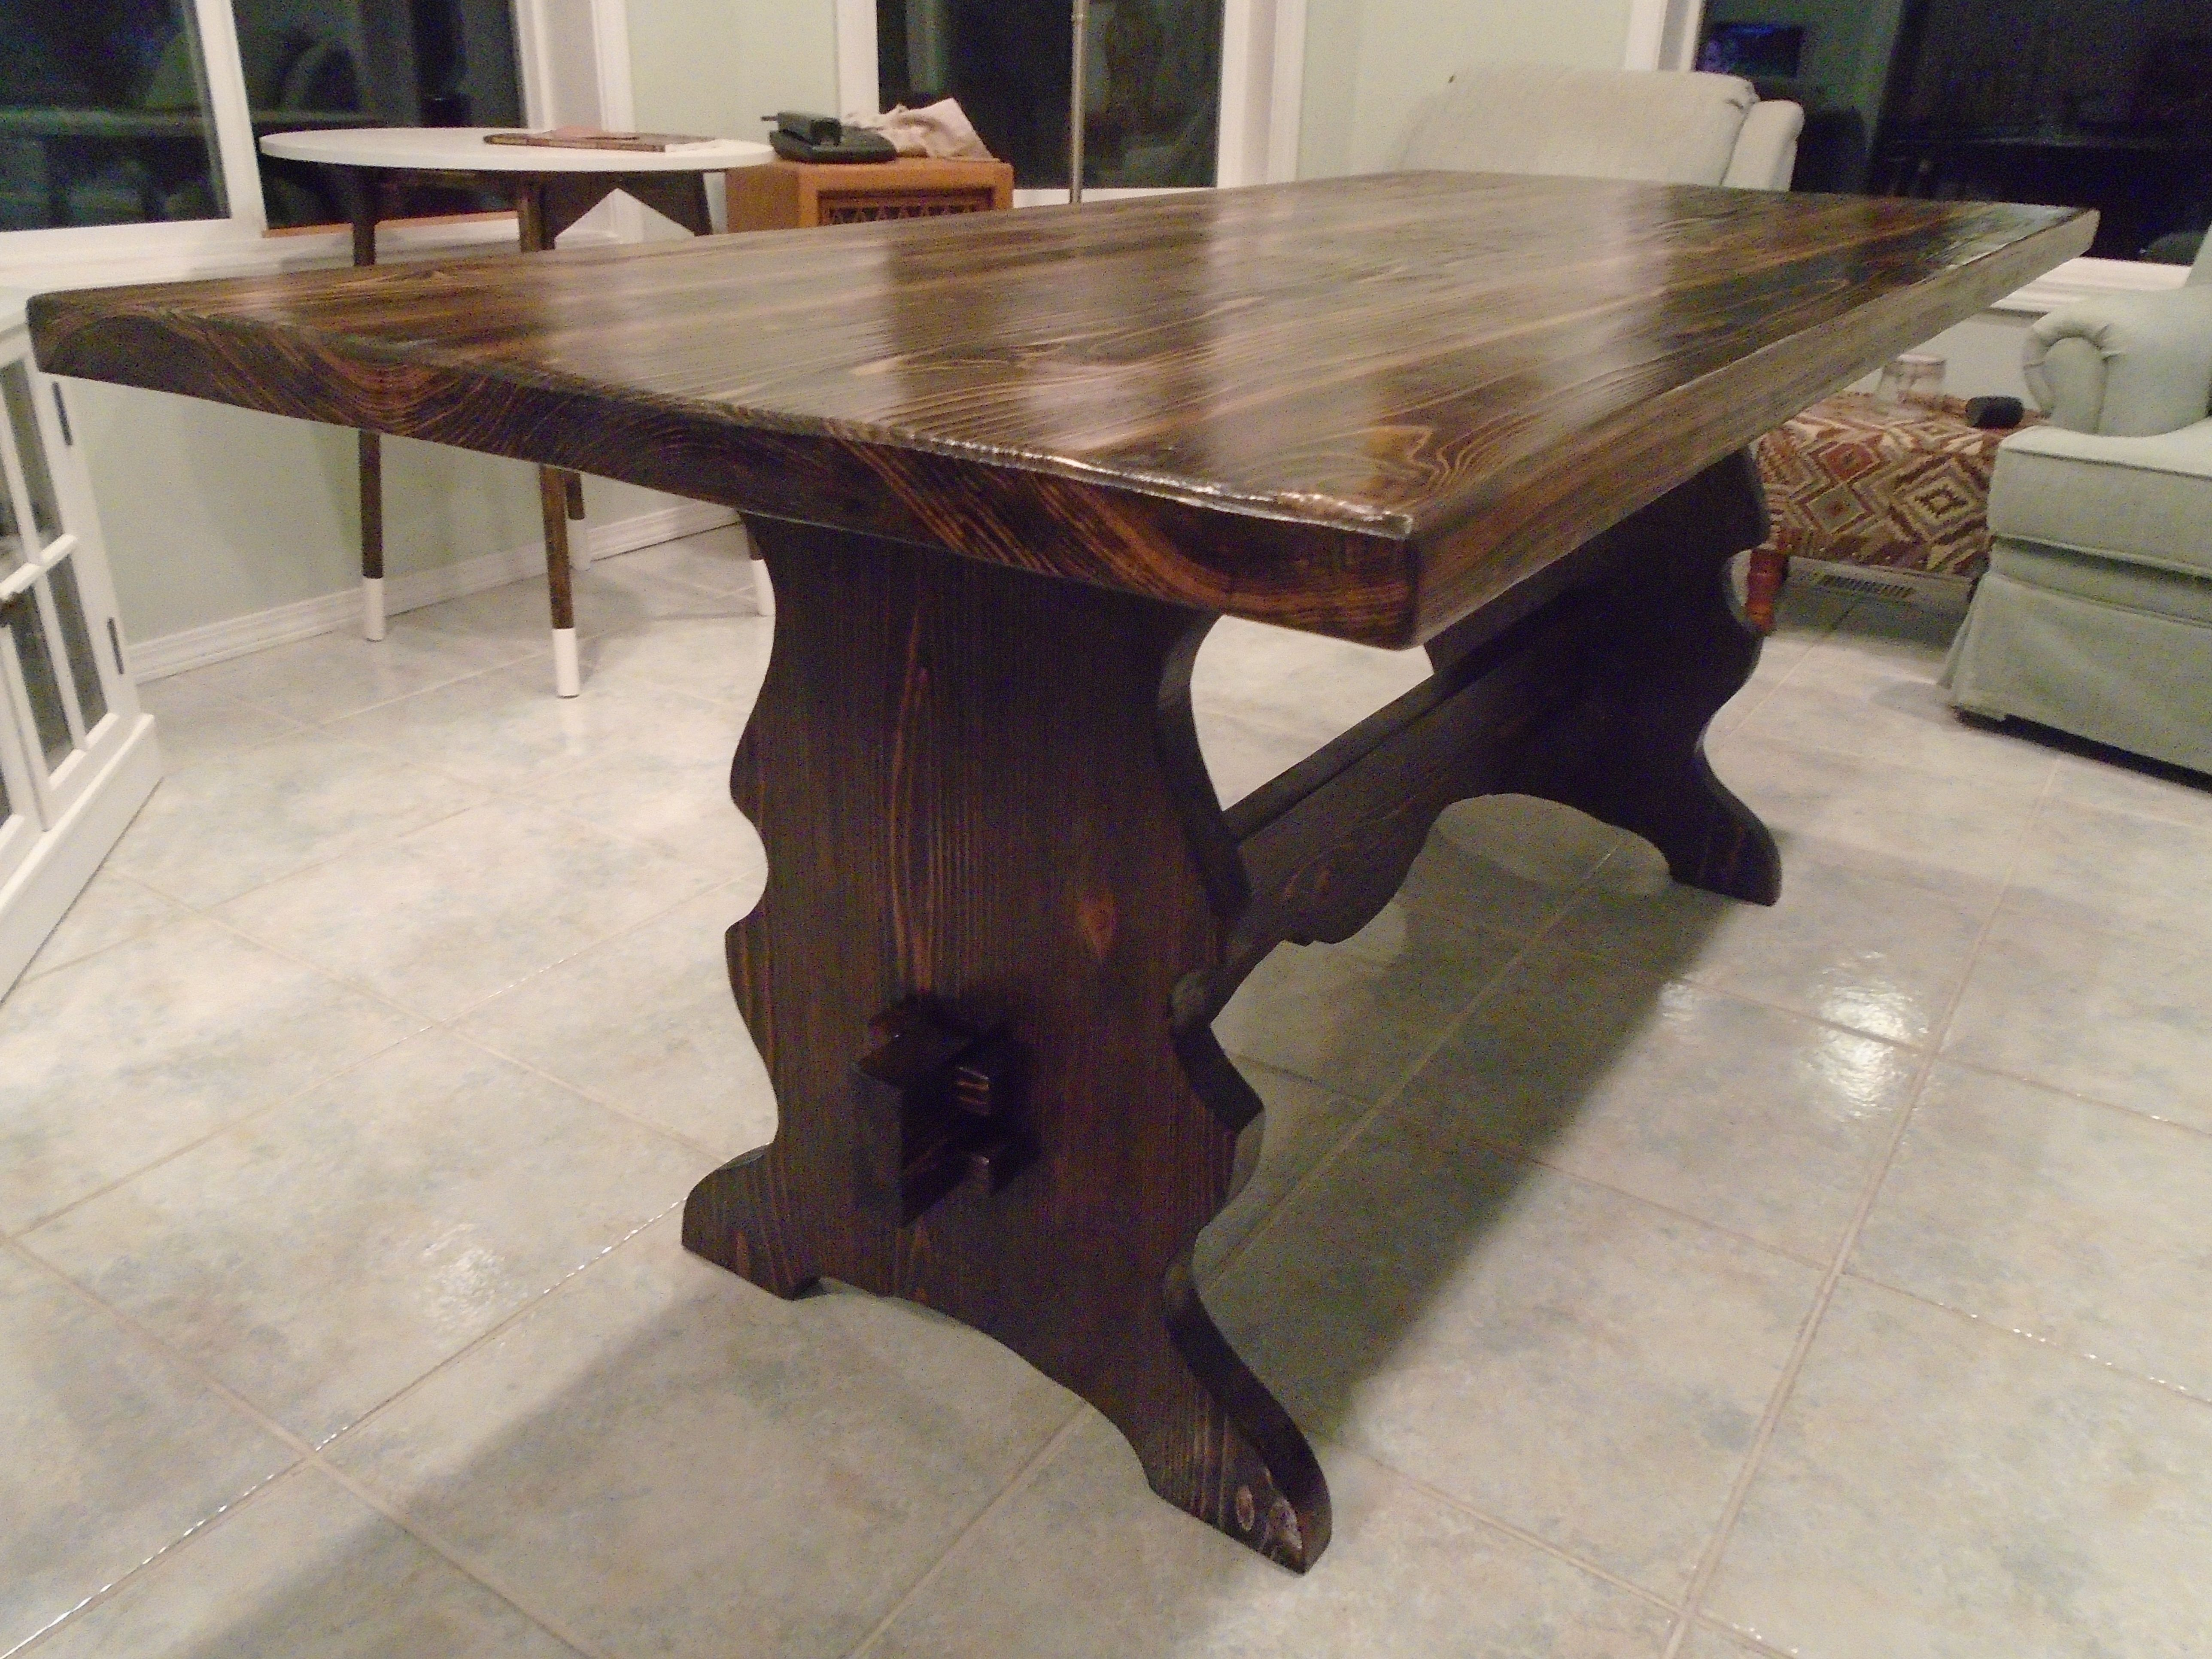 Solid Wood Trestle Table. The Table Is Solid Douglas Fir Stained A Dark  Walnut Color